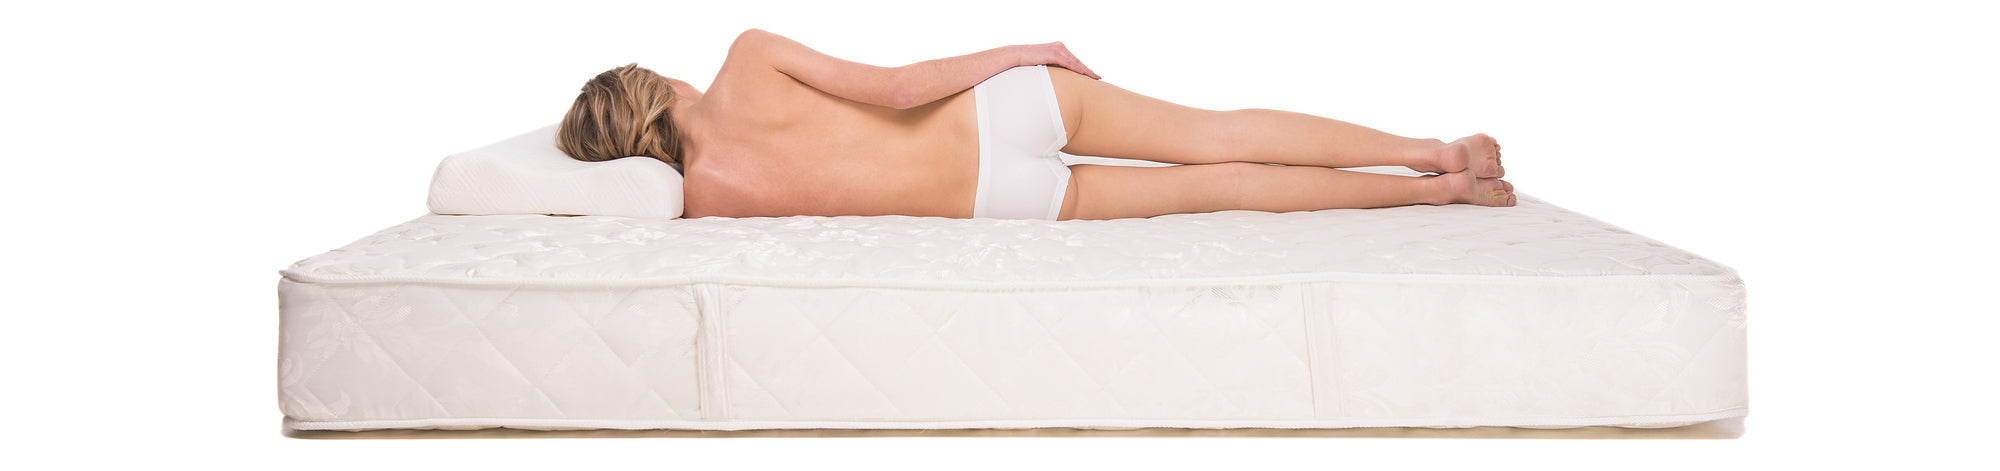 The Best Mattress For Lower Back Pain!